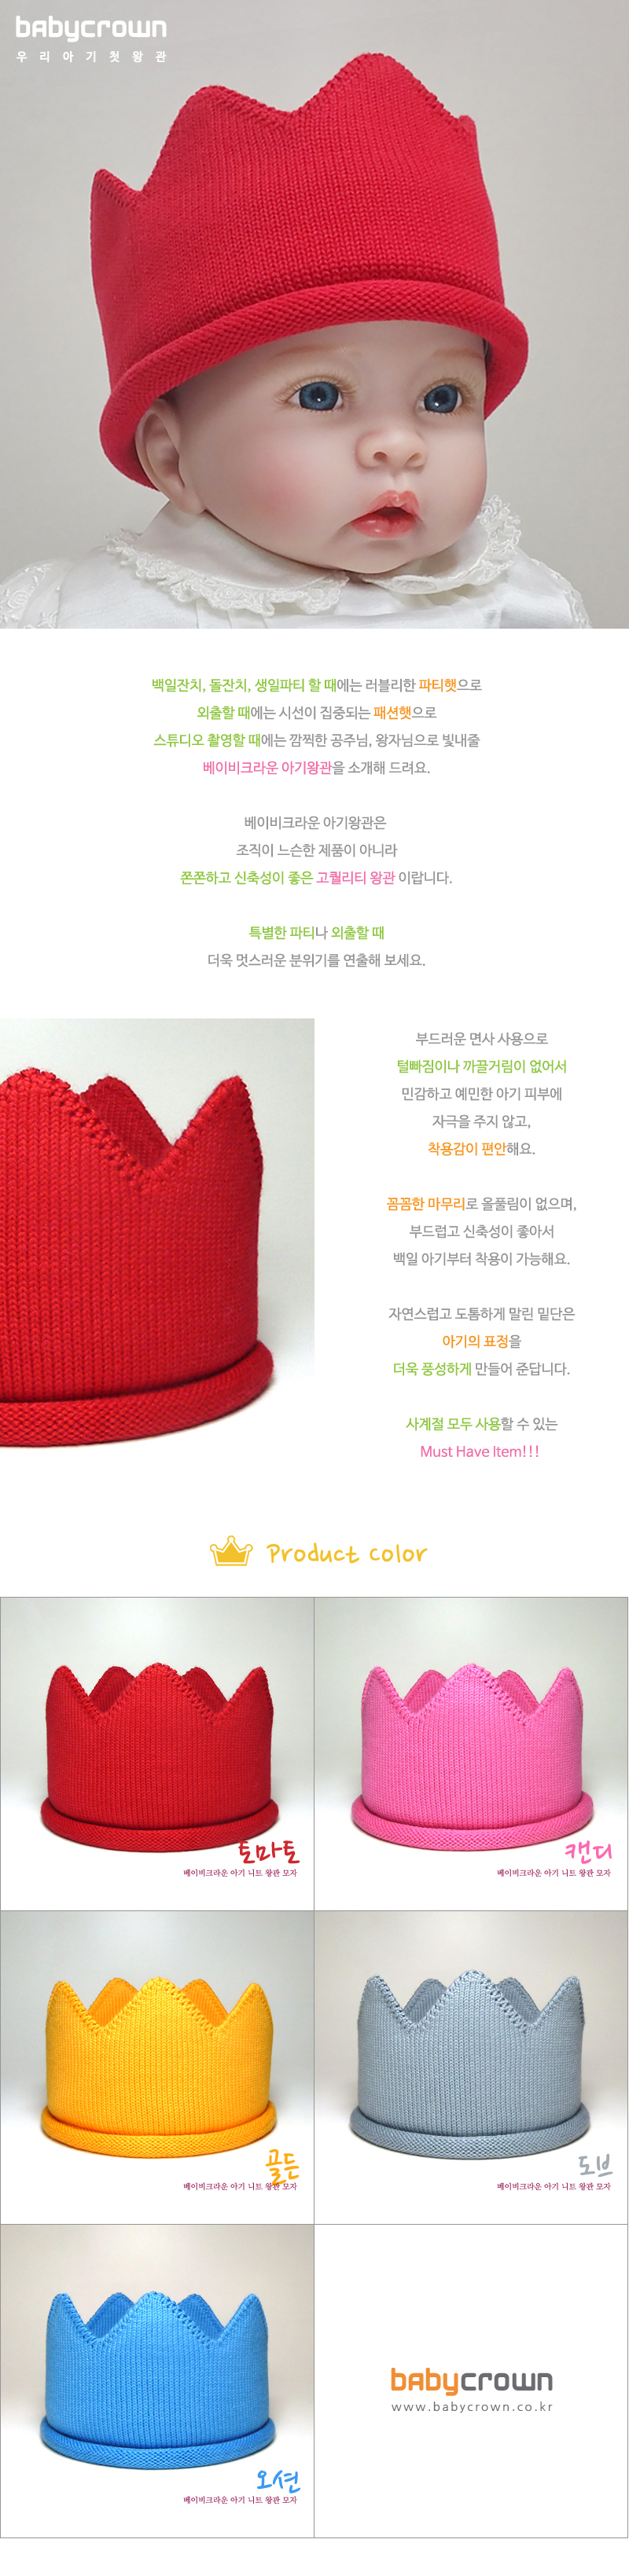 [ Babycrown ] [Baby Crown] baby knit crown cutie (tomato)